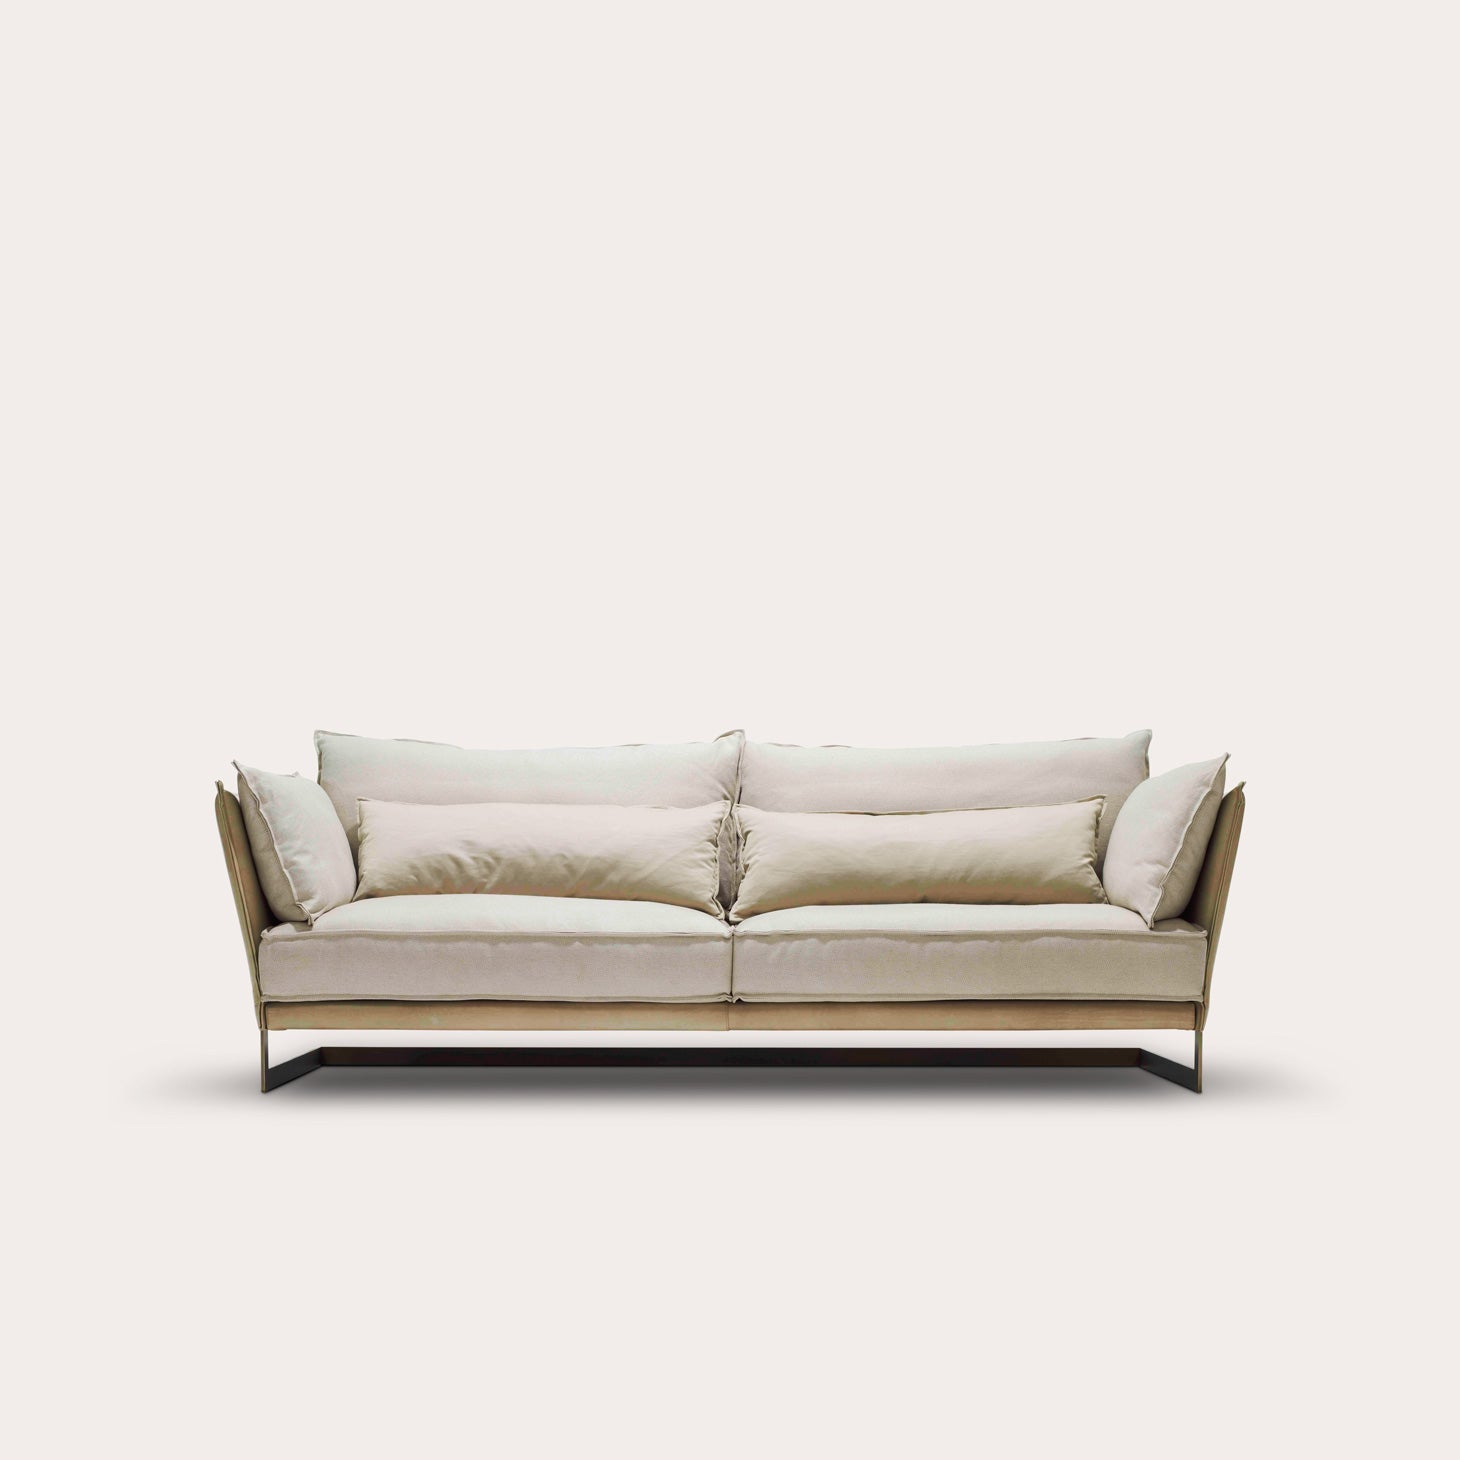 Mulberry Street Sofa 250 Seating Marcel Wolterinck Designer Furniture Sku: 247-240-10359